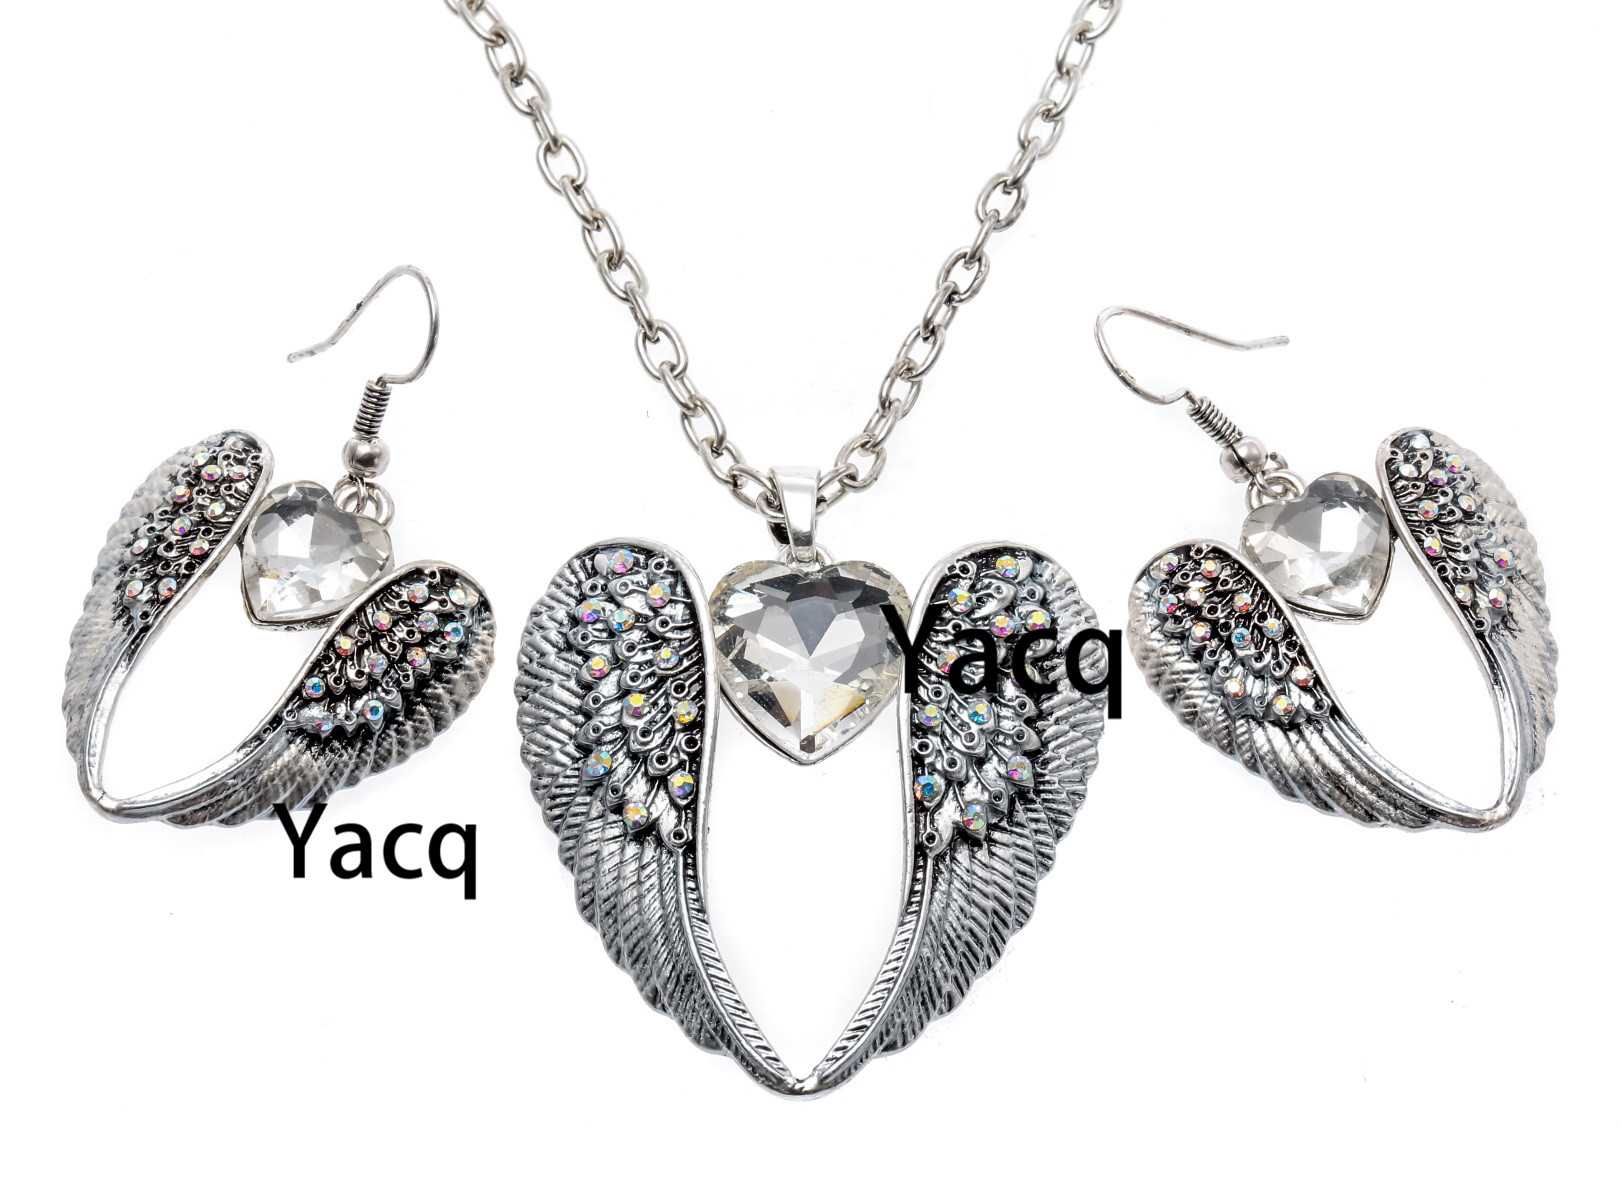 YACQ Guardian Angel Wing Heart Necklace Earrings Sets Antique Silver Color Women Girls Crystal Jewelry Gifts Dropshipping ENC06 joyashiny made with swarovski element crystals angel pendant necklace cute silver color wing jewelry chic gifts for kids girls